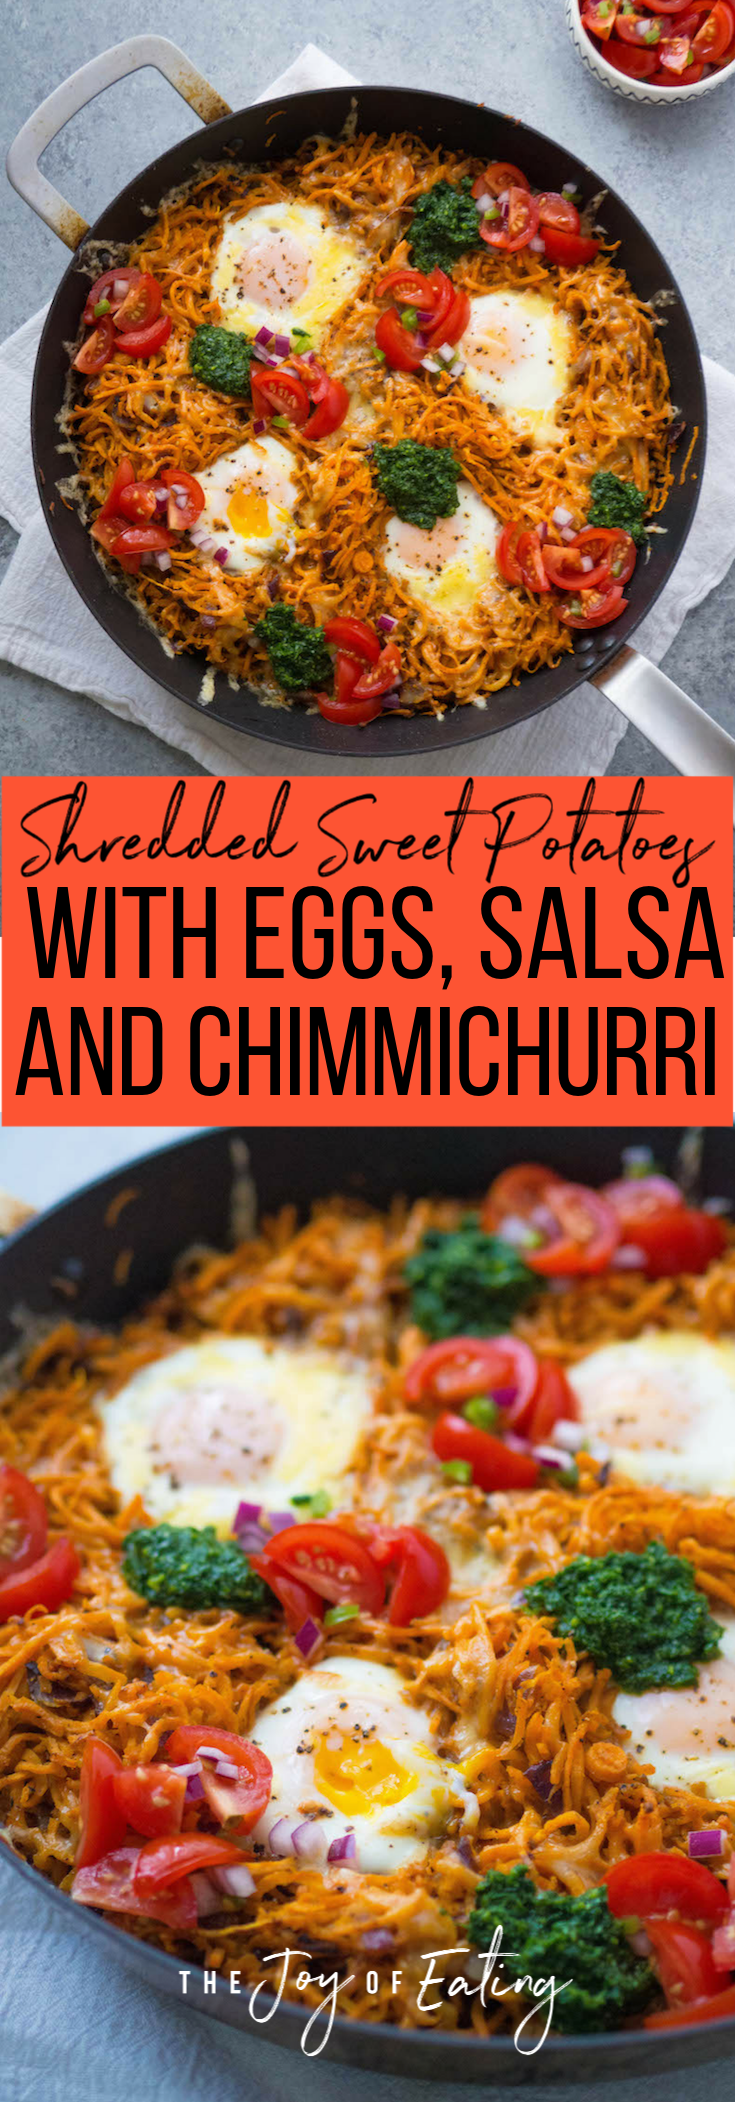 Shredded Sweet Potatoes with Eggs, Chimichurri and Fresh Salsa! It's an easy budget friendly dinner that's super satisfying! You'll love all the smoky spices! #sweetpotato #glutenfree #vegetarian #healthy #recipe